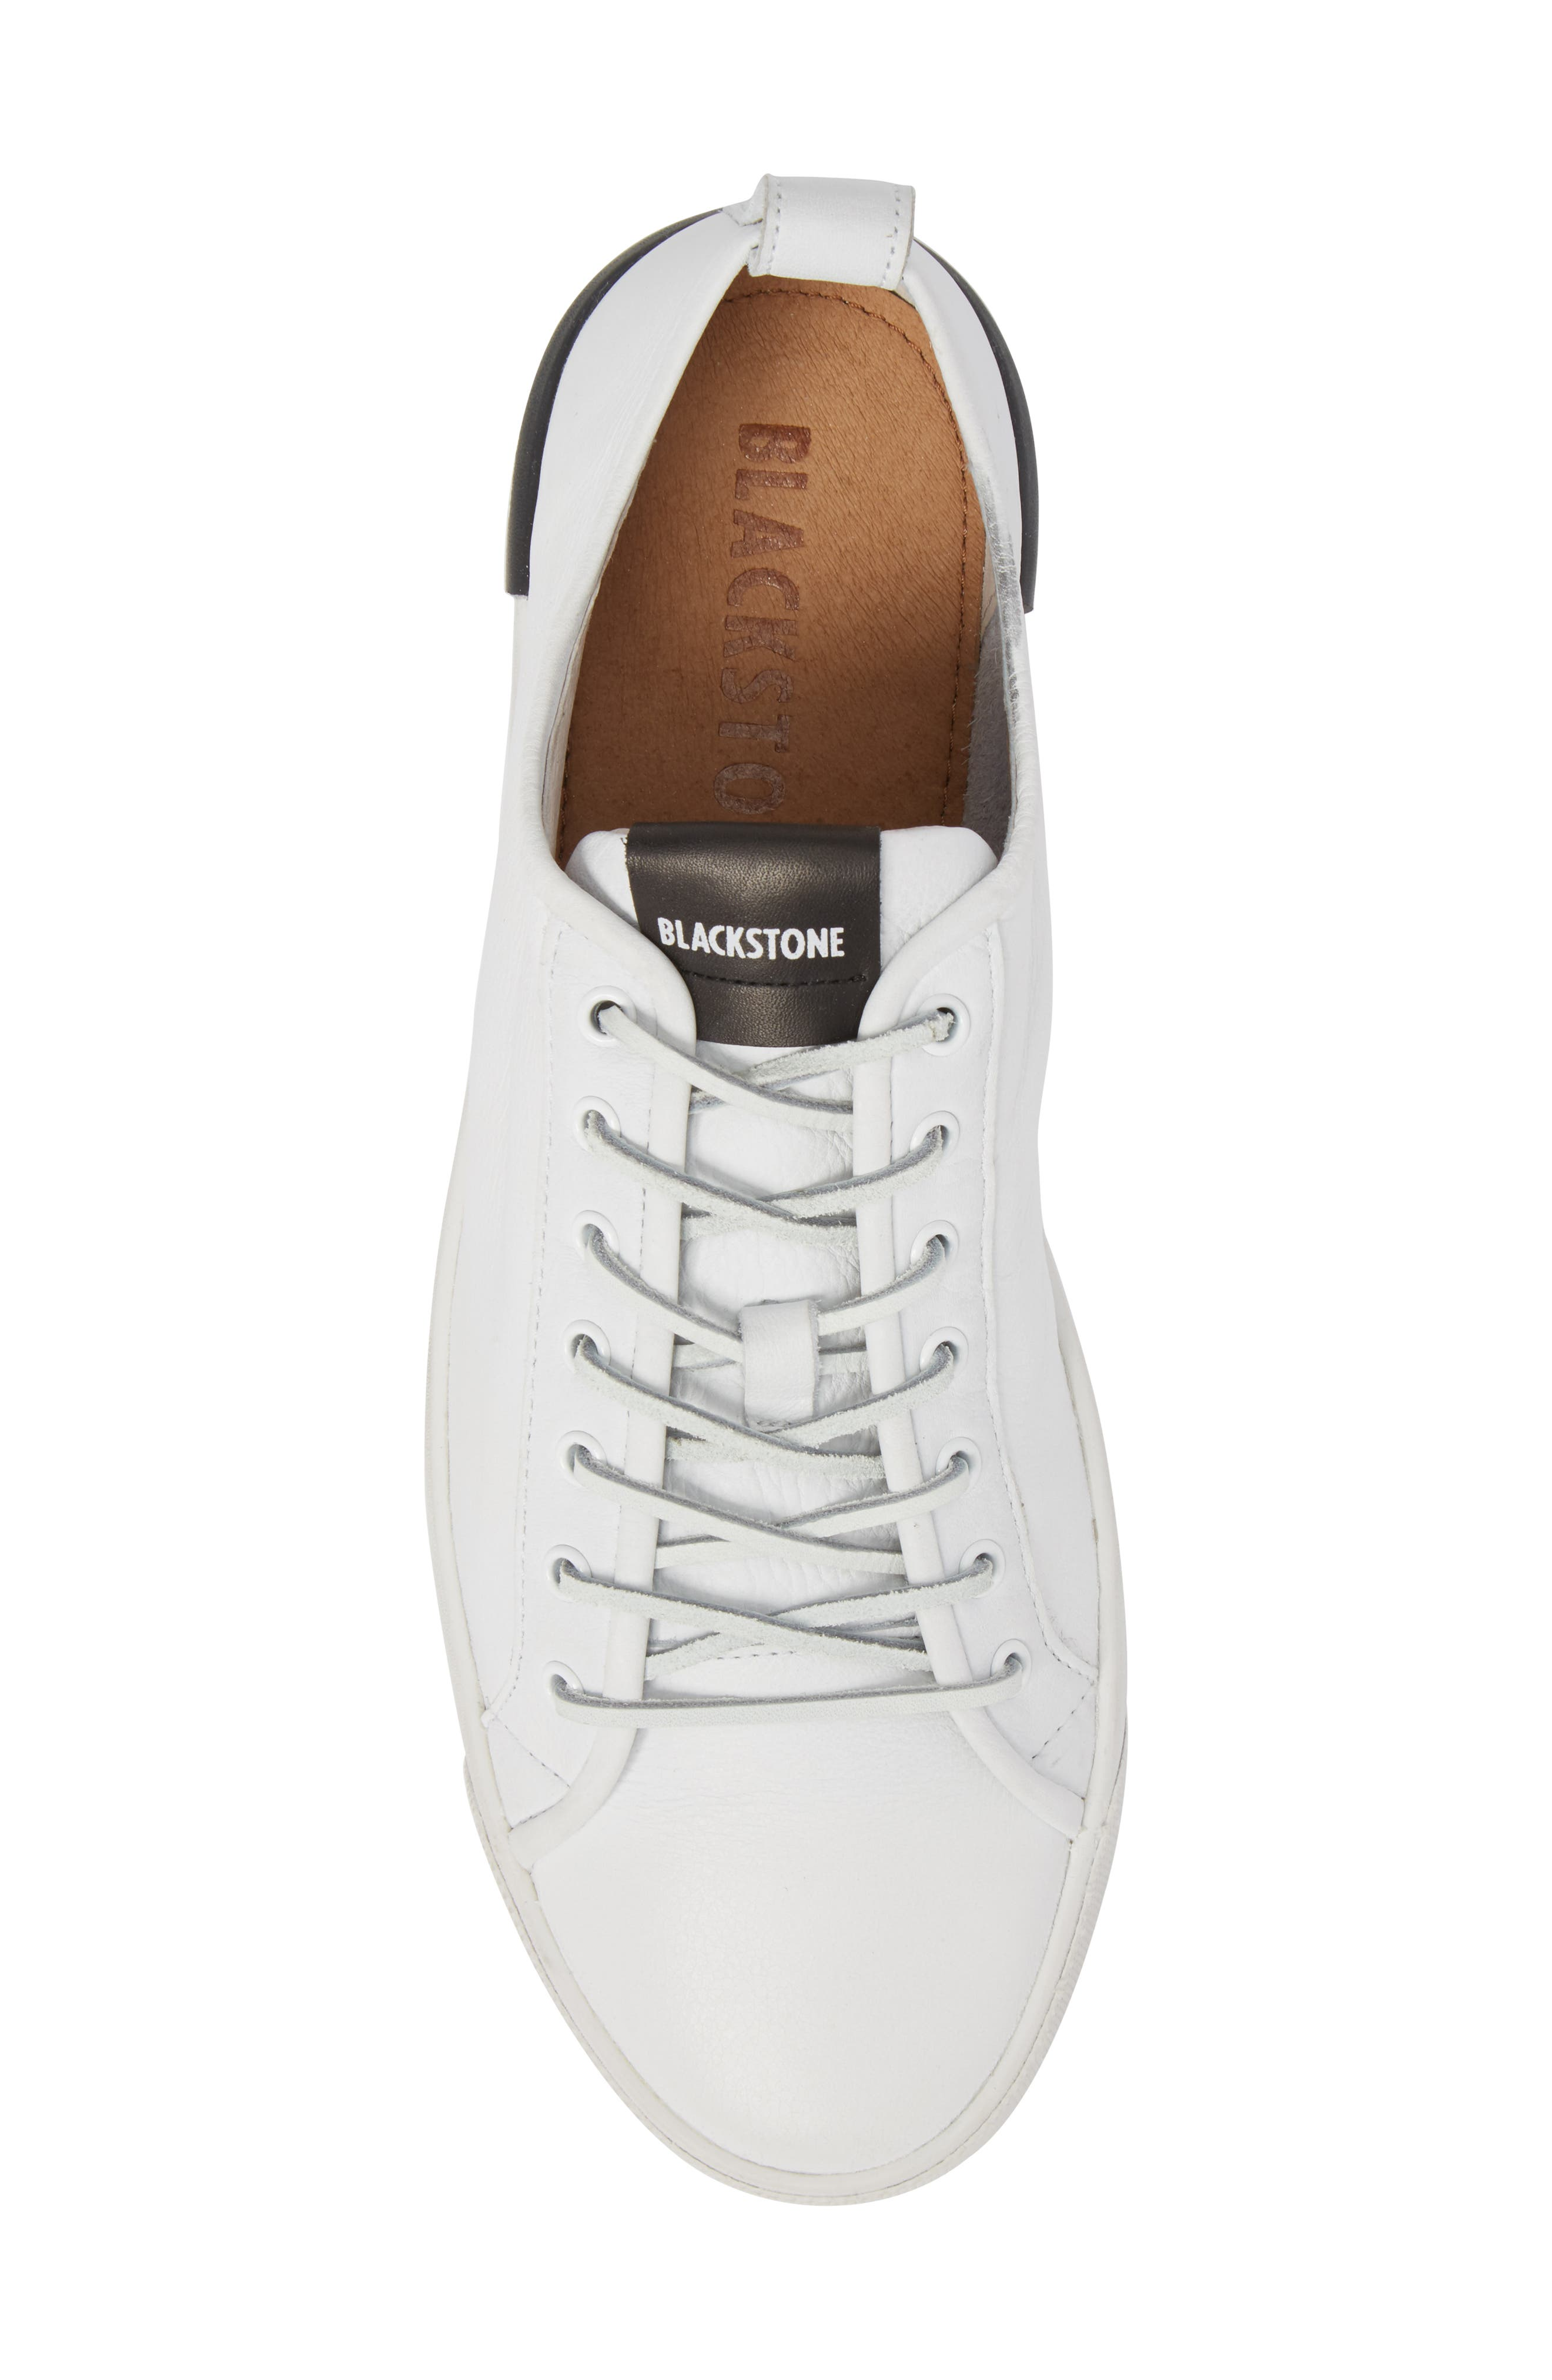 PM66 Low Top Sneaker,                             Alternate thumbnail 5, color,                             White Leather